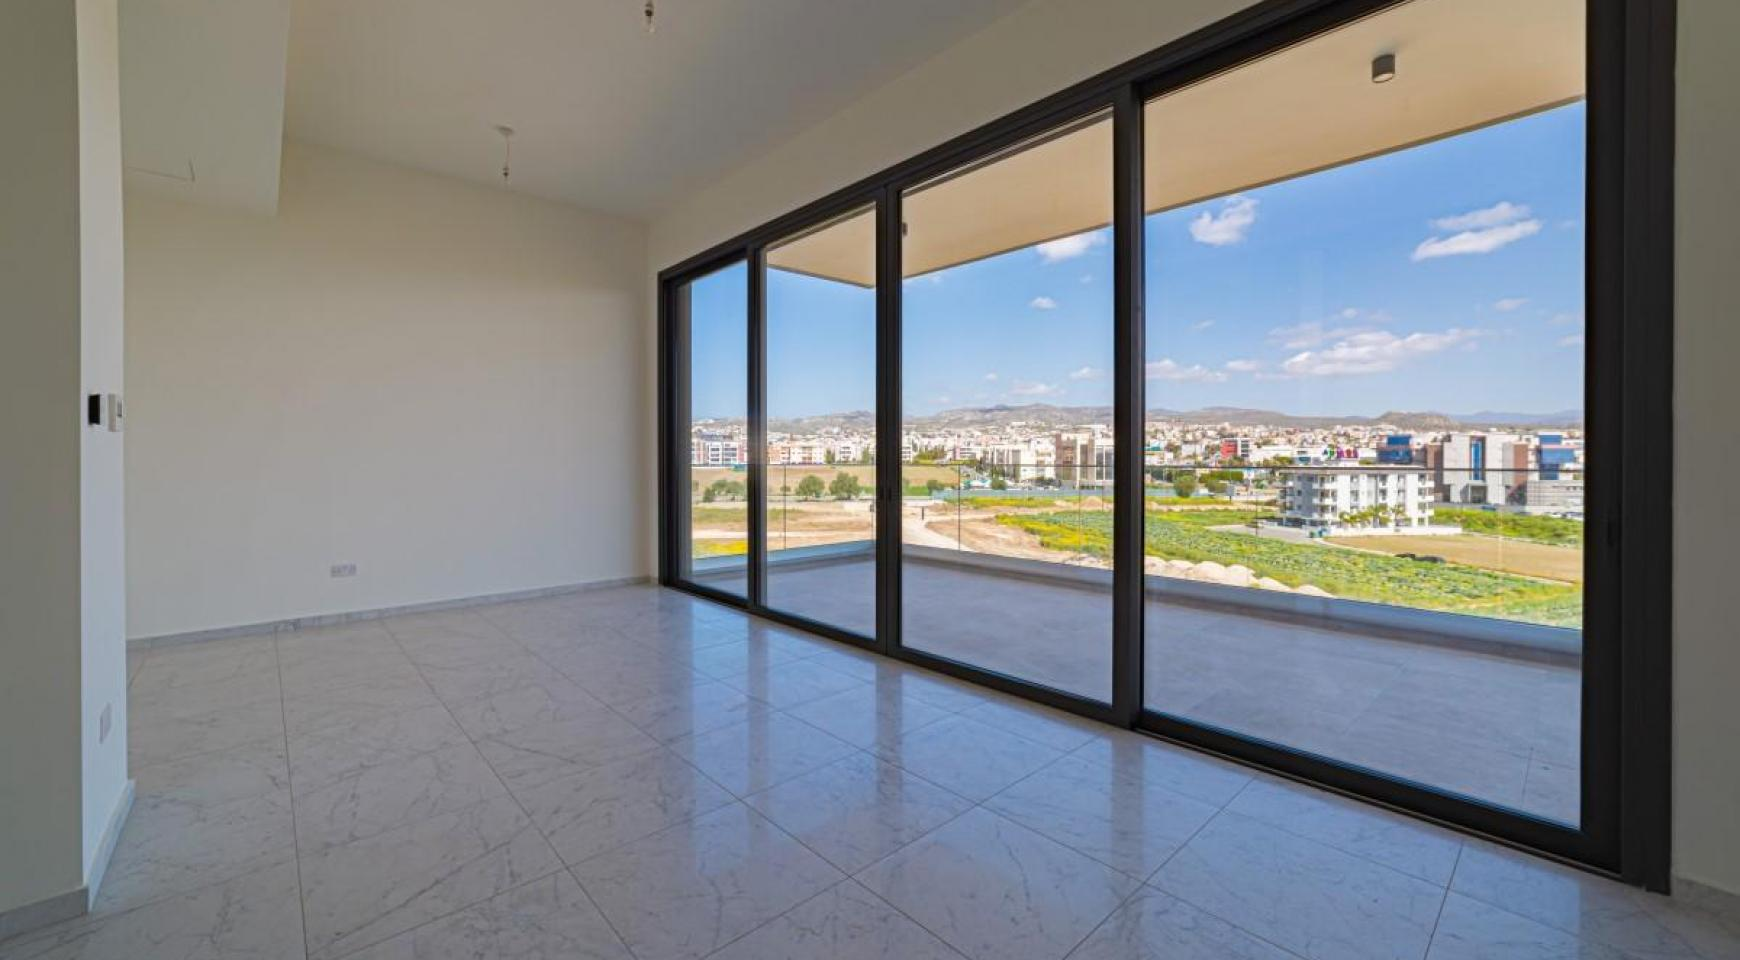 Urban City Residences, Block A. New Spacious 3 Bedroom Apartment 201 in the City Centre - 6